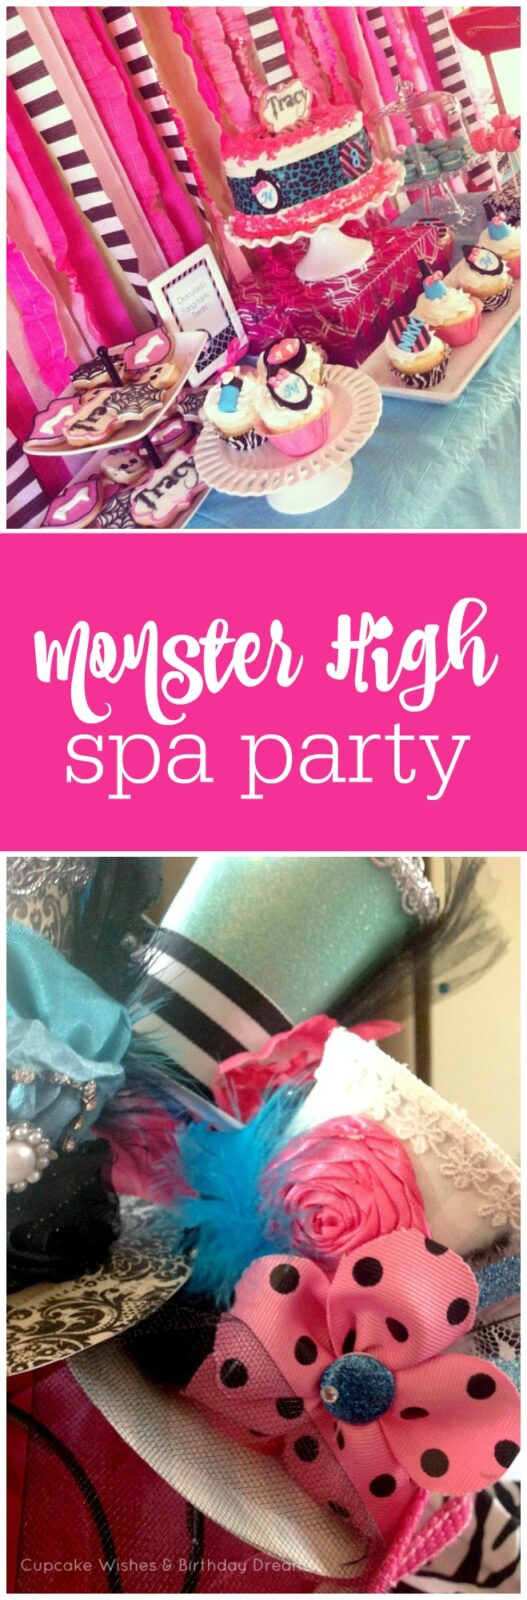 Monster High Spa Party by Cupcake Wishes and Birthday Dreams featured on The Party Teacher